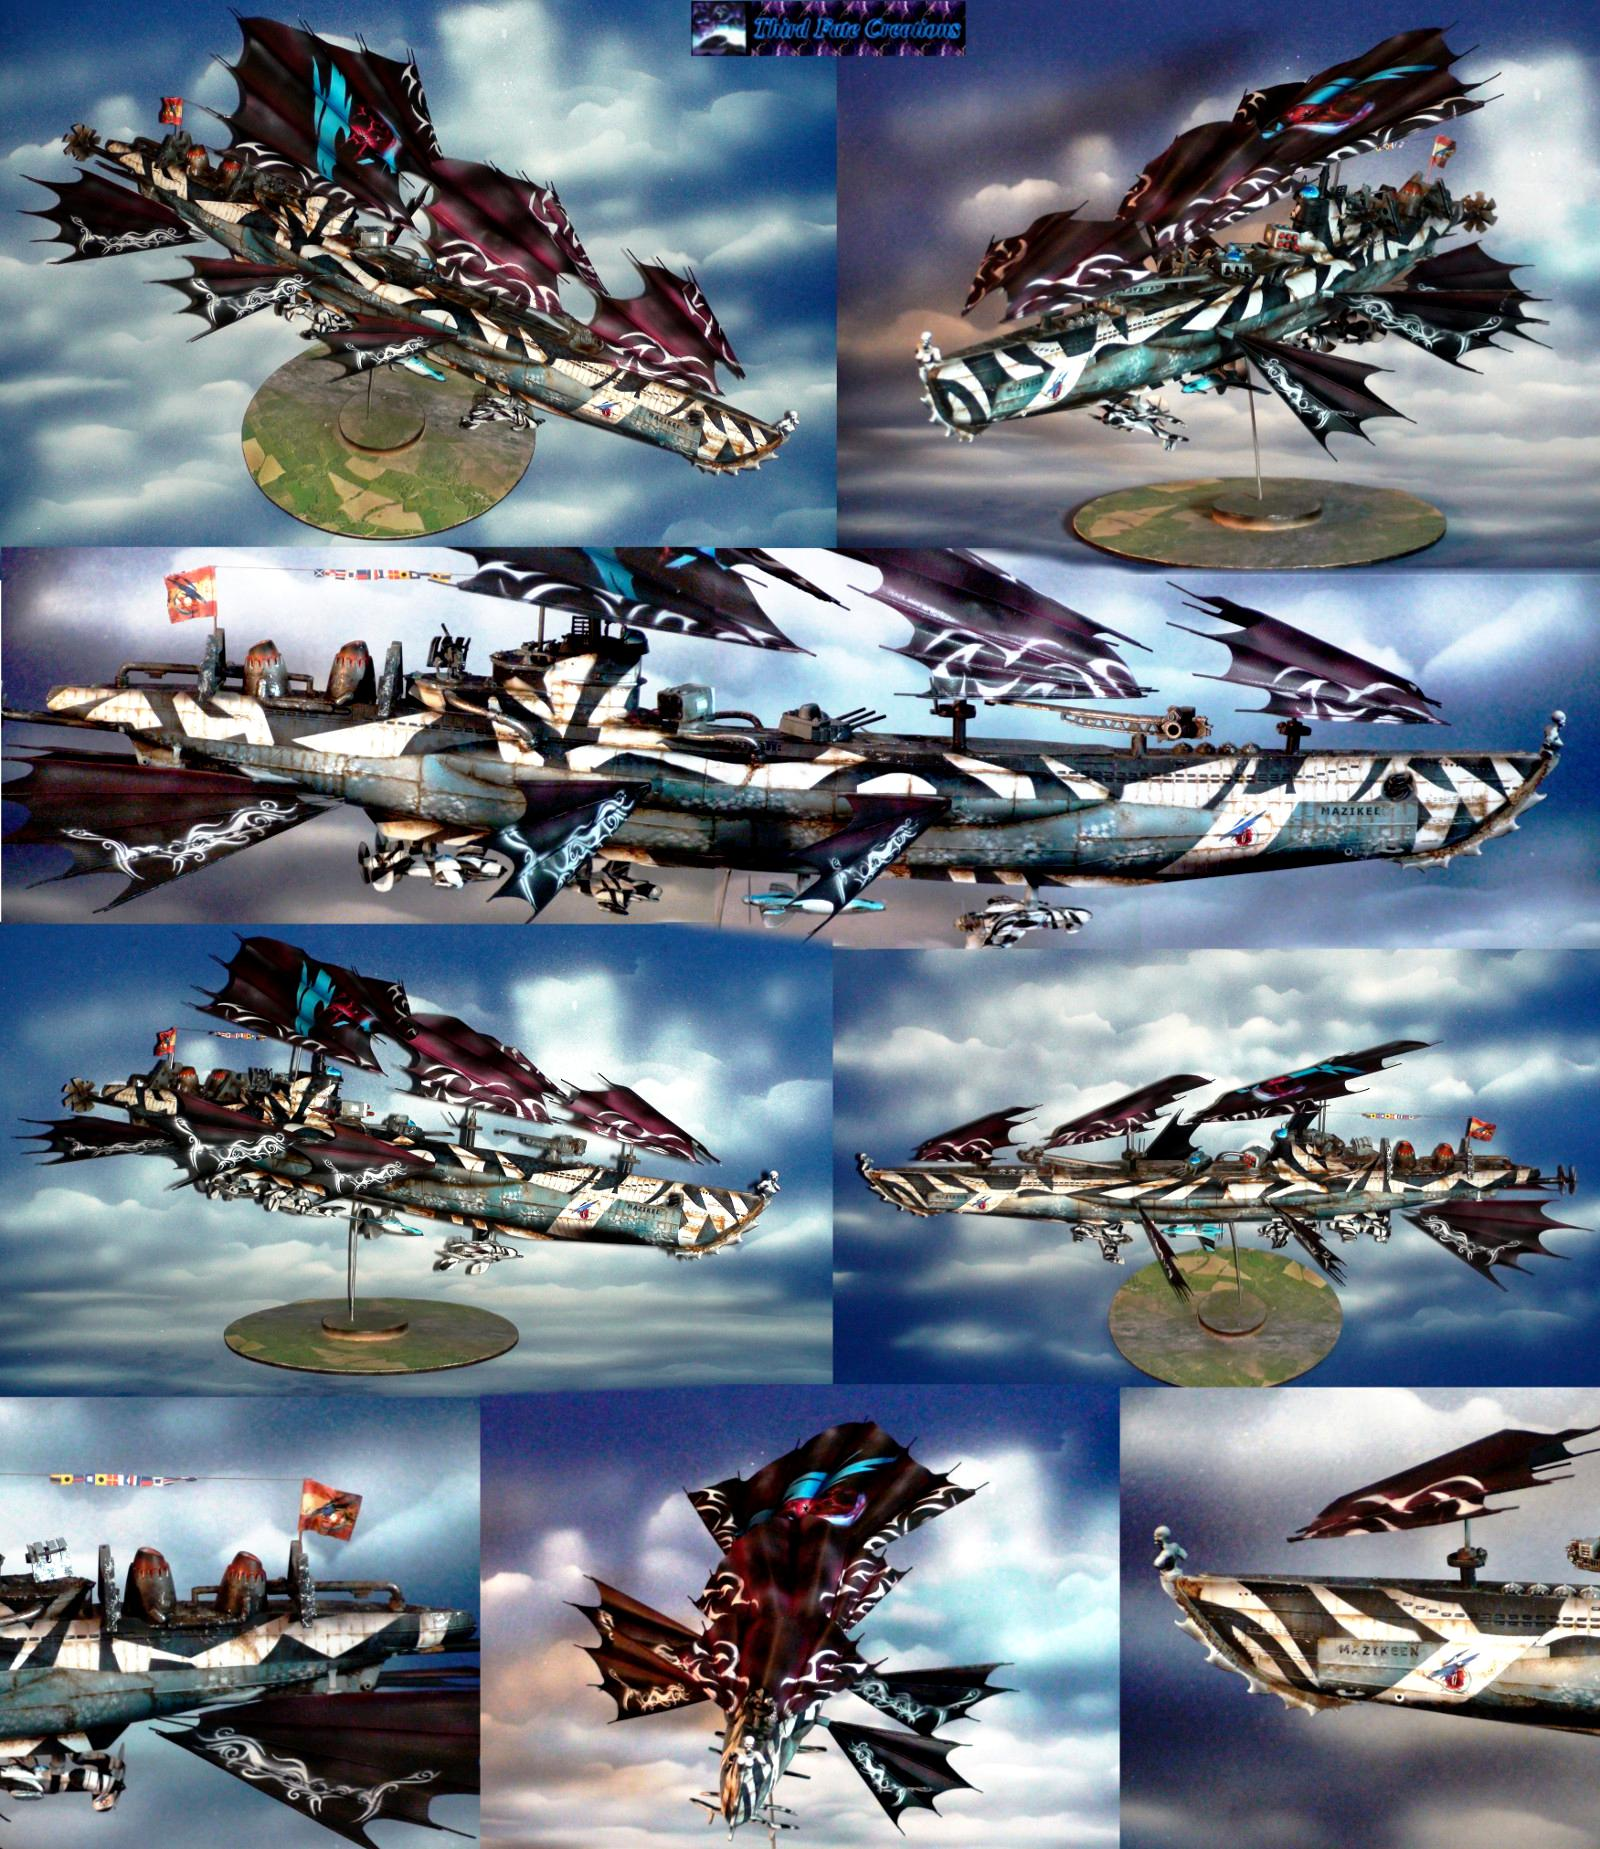 Airbrush, Airship, Crimson, Crimson Skies, Dieselpunk, Final Fantasy, Pulp, Skies, Thirdfatecreations